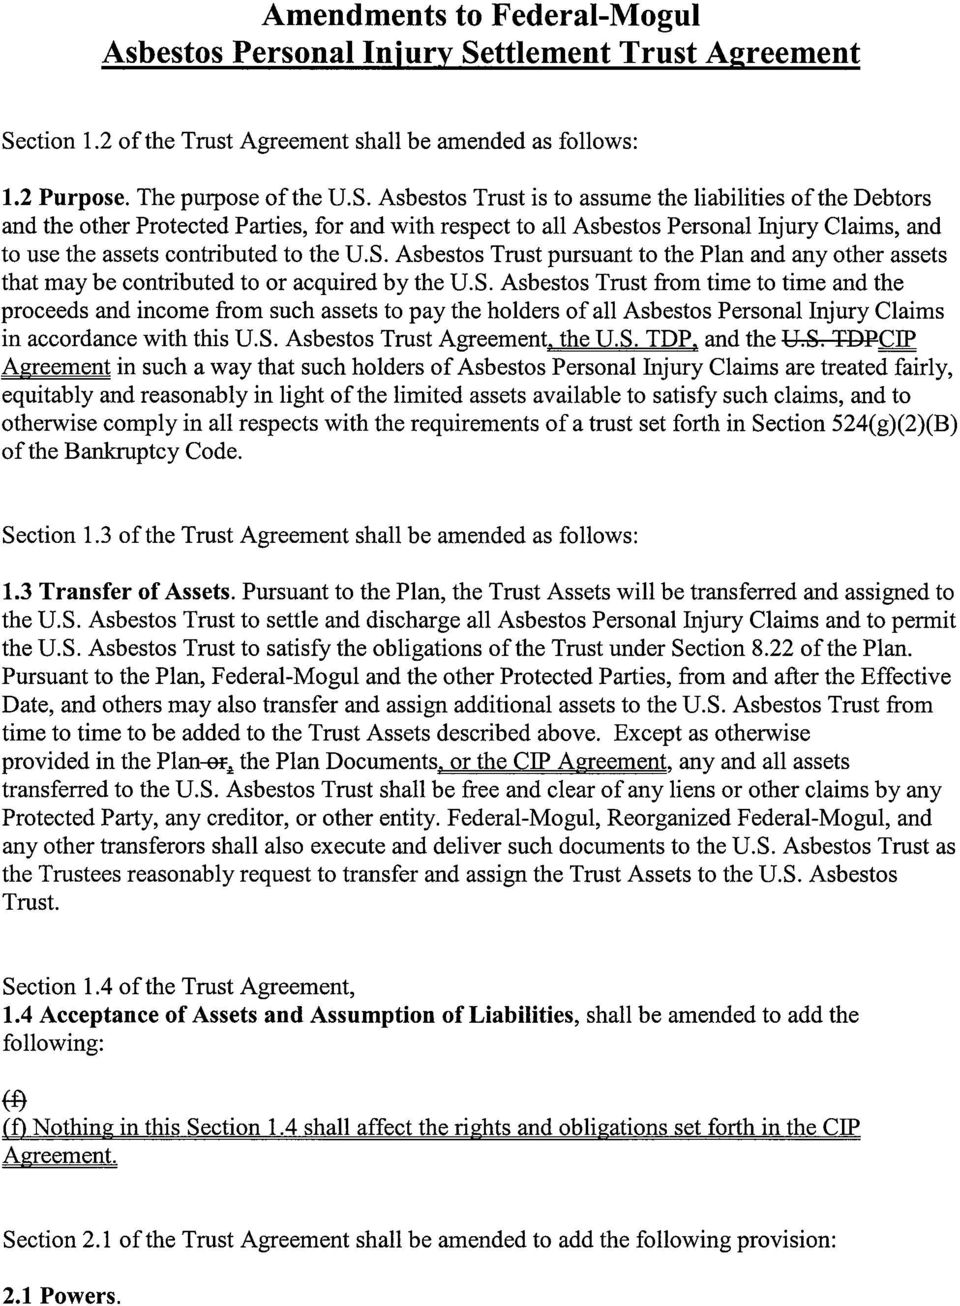 ction 1.2 of the Trust Agreement shall be amended as follows: 1.2 Purpose. The purpose ofthe U.S.